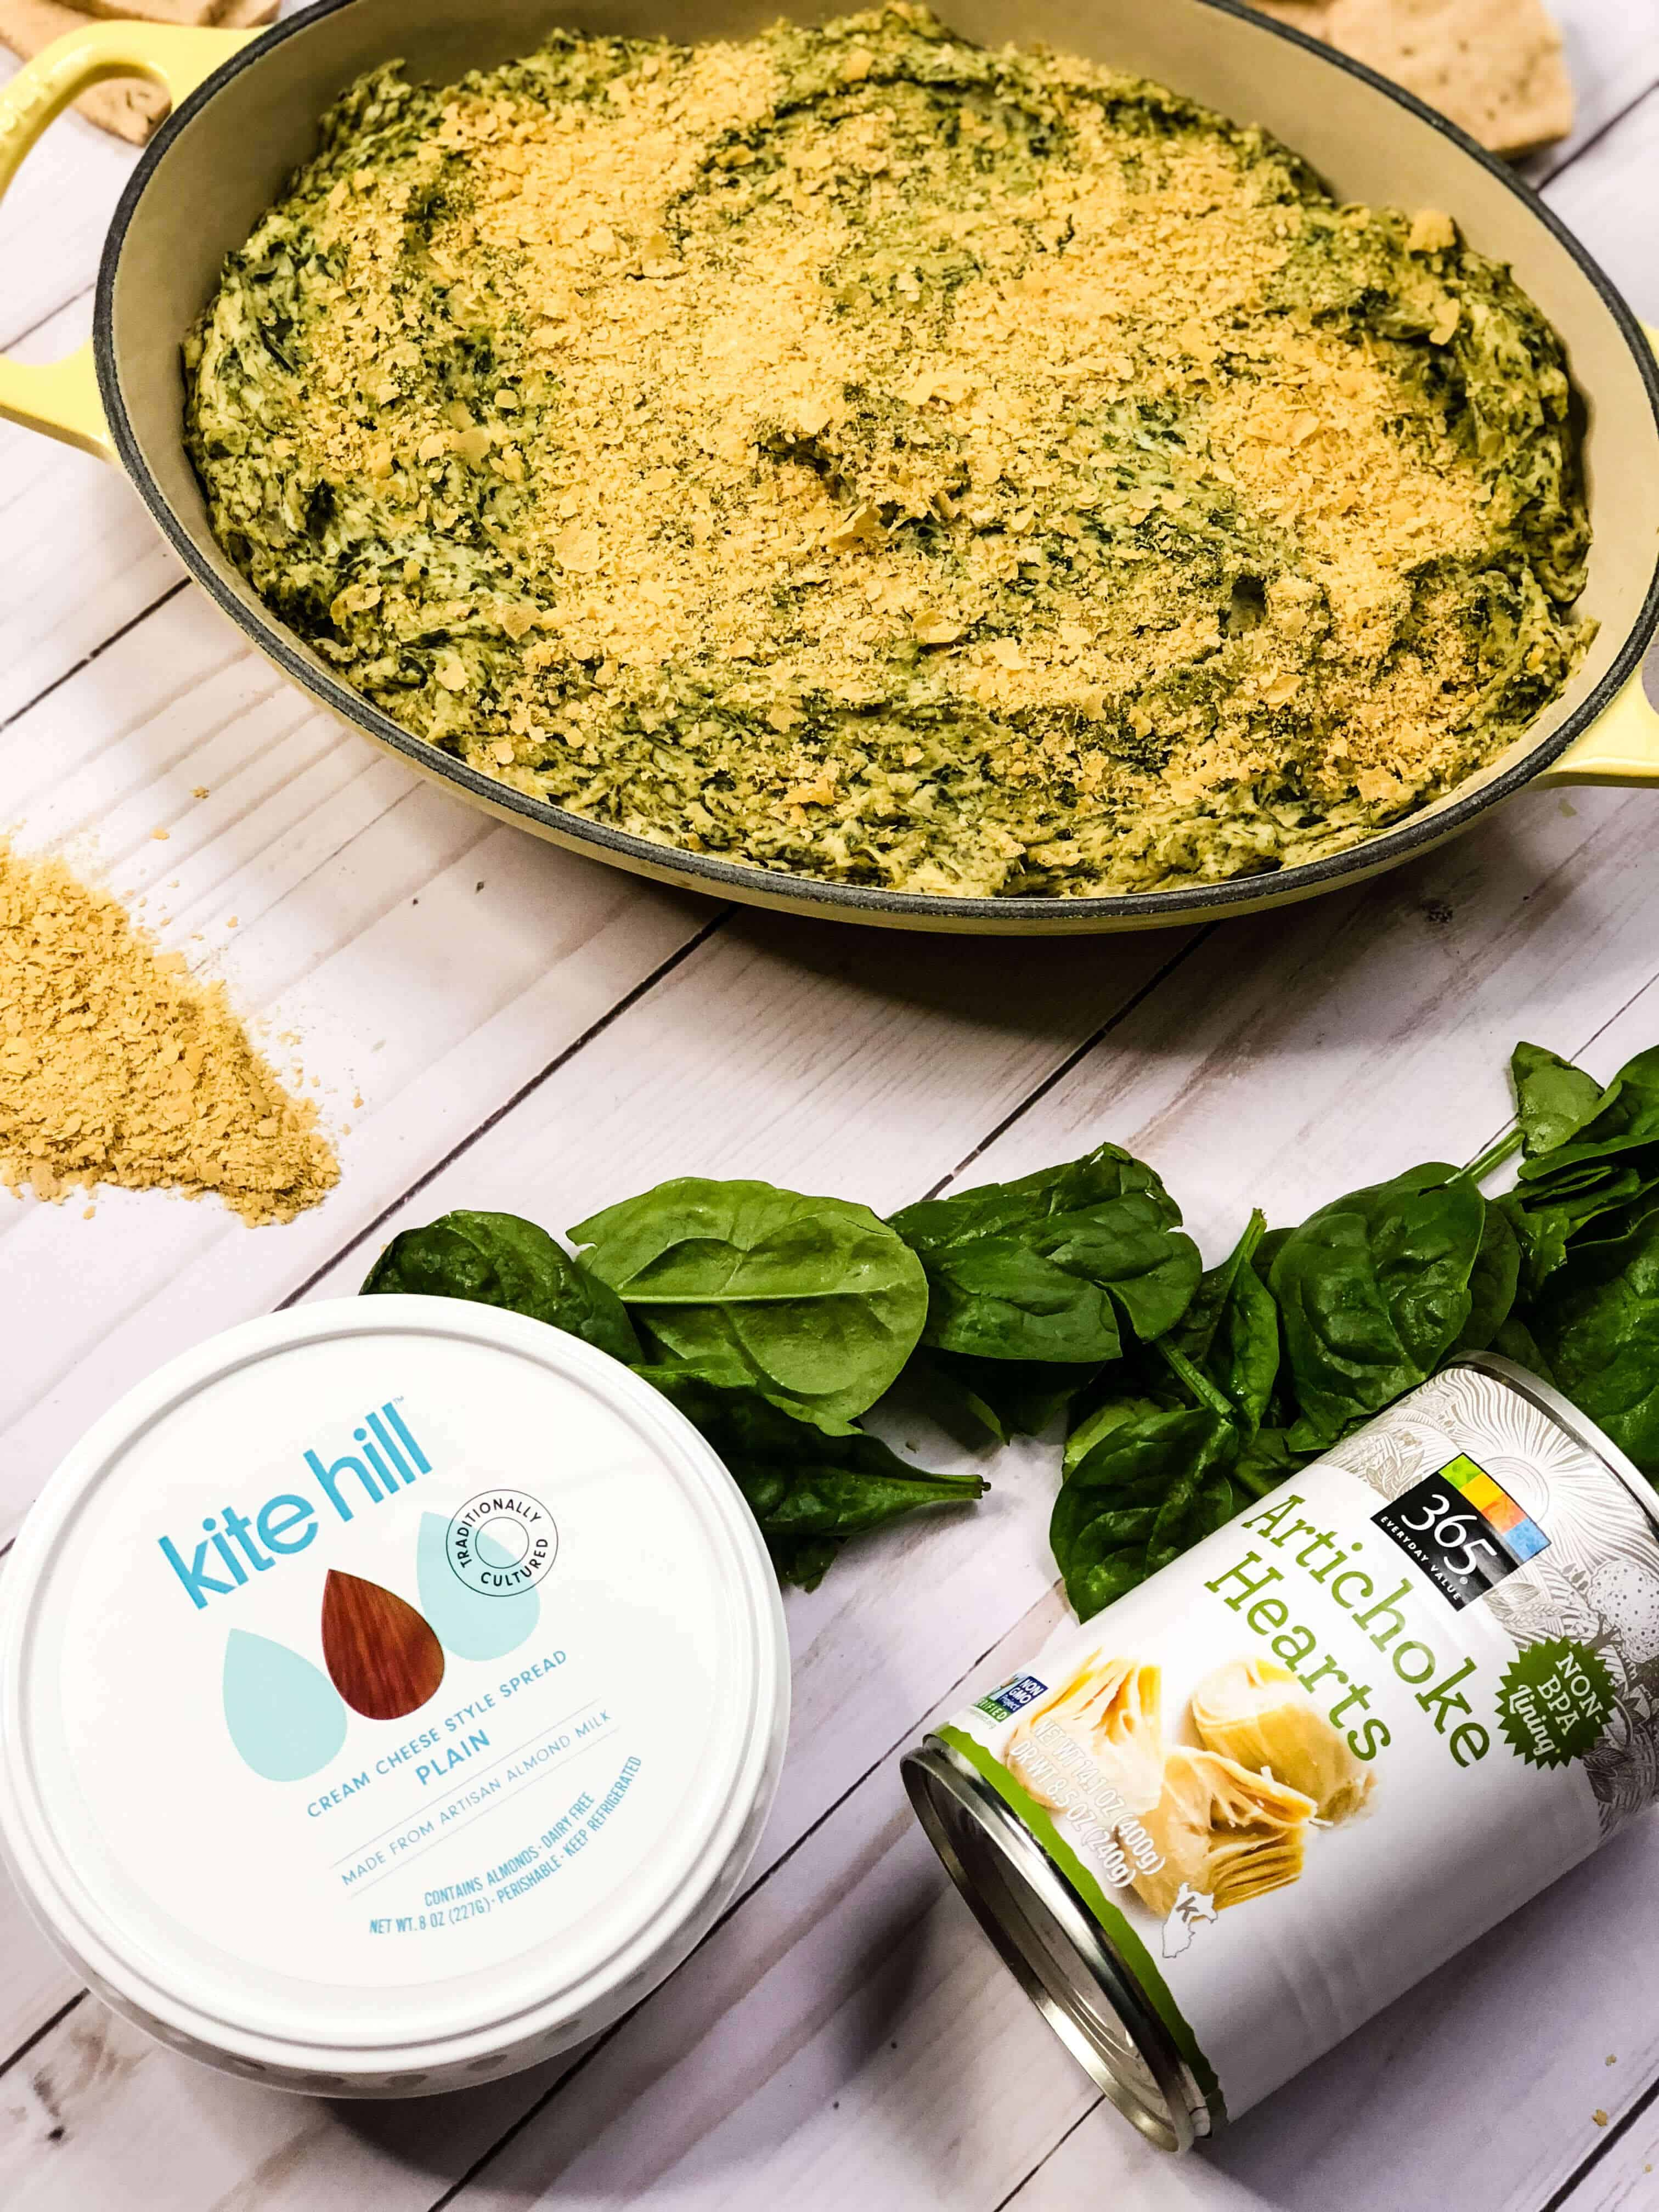 Quick & Easy Spinach Artichoke Dip! Vegan, Gluten Free & Soy Free Dish that's sure to win hearts this holiday! #saveeandsavory #vegan #glutenfree #recipe #appetizer